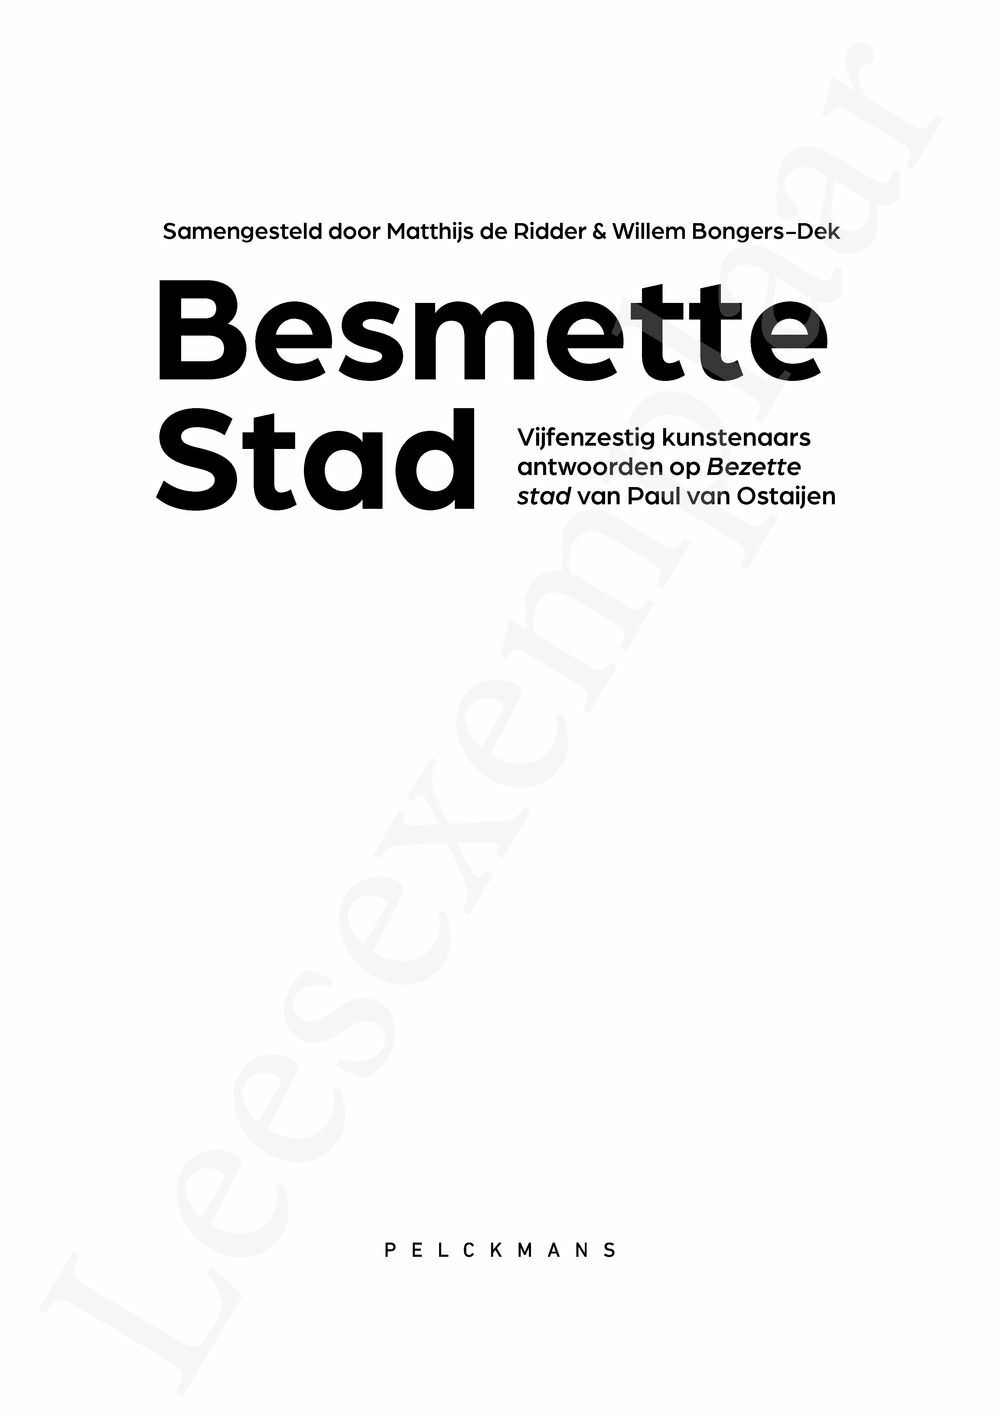 Preview: Besmette Stad